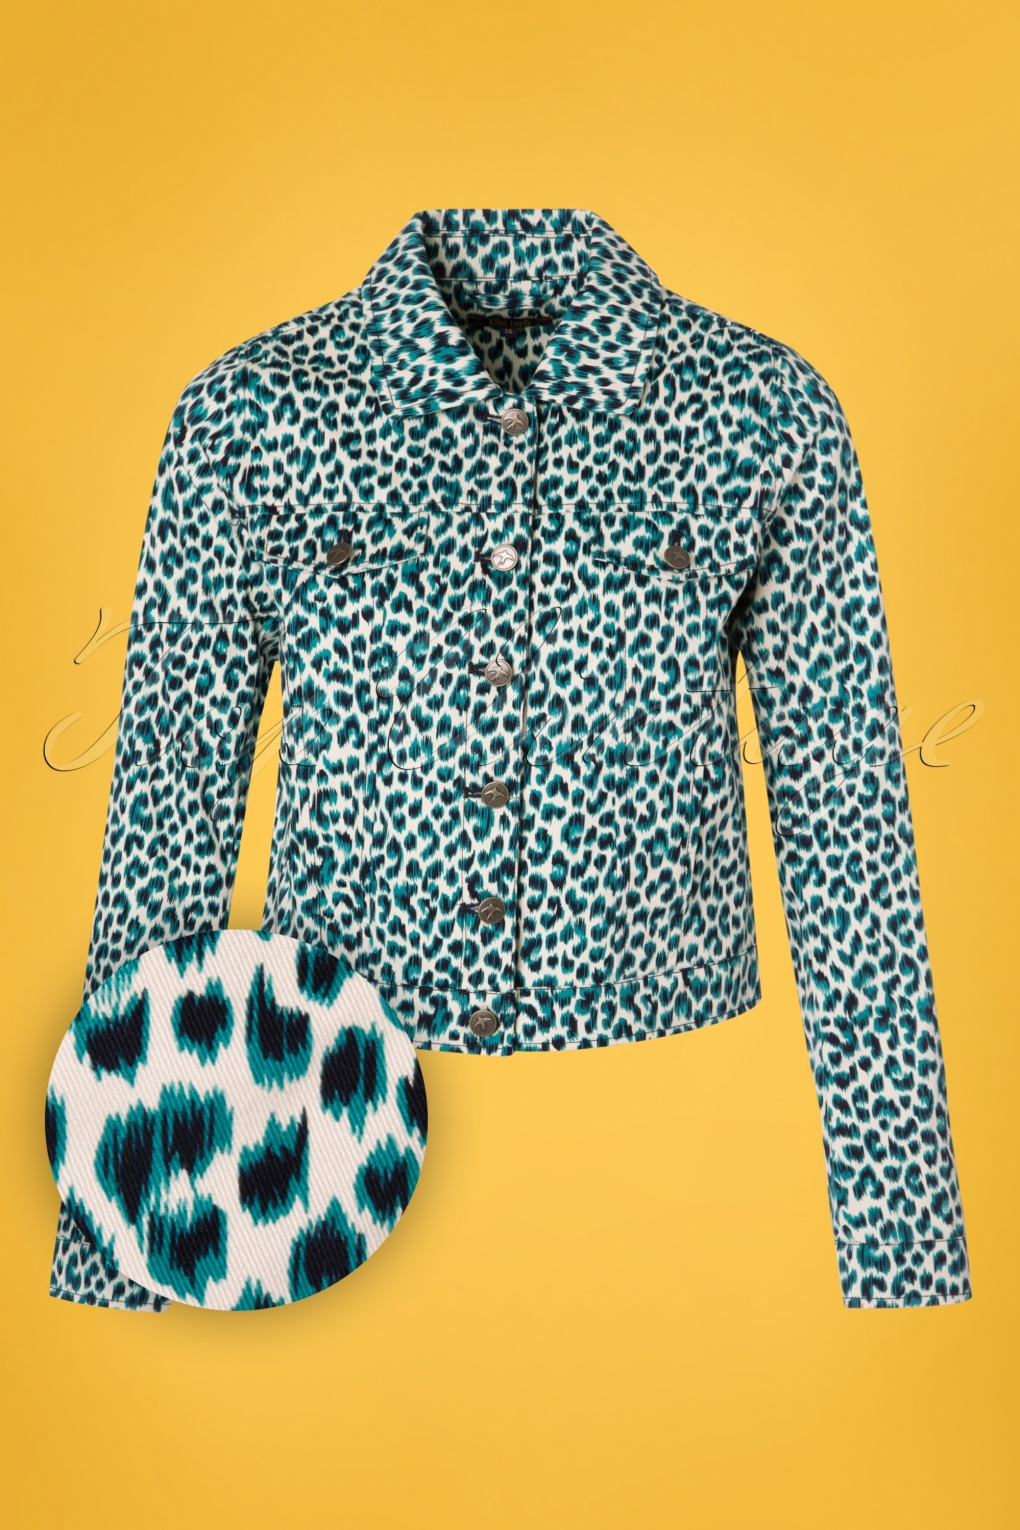 Vintage Coats & Jackets | Retro Coats and Jackets 60s Janey Catnip Jacket in Putty Ecru £86.36 AT vintagedancer.com